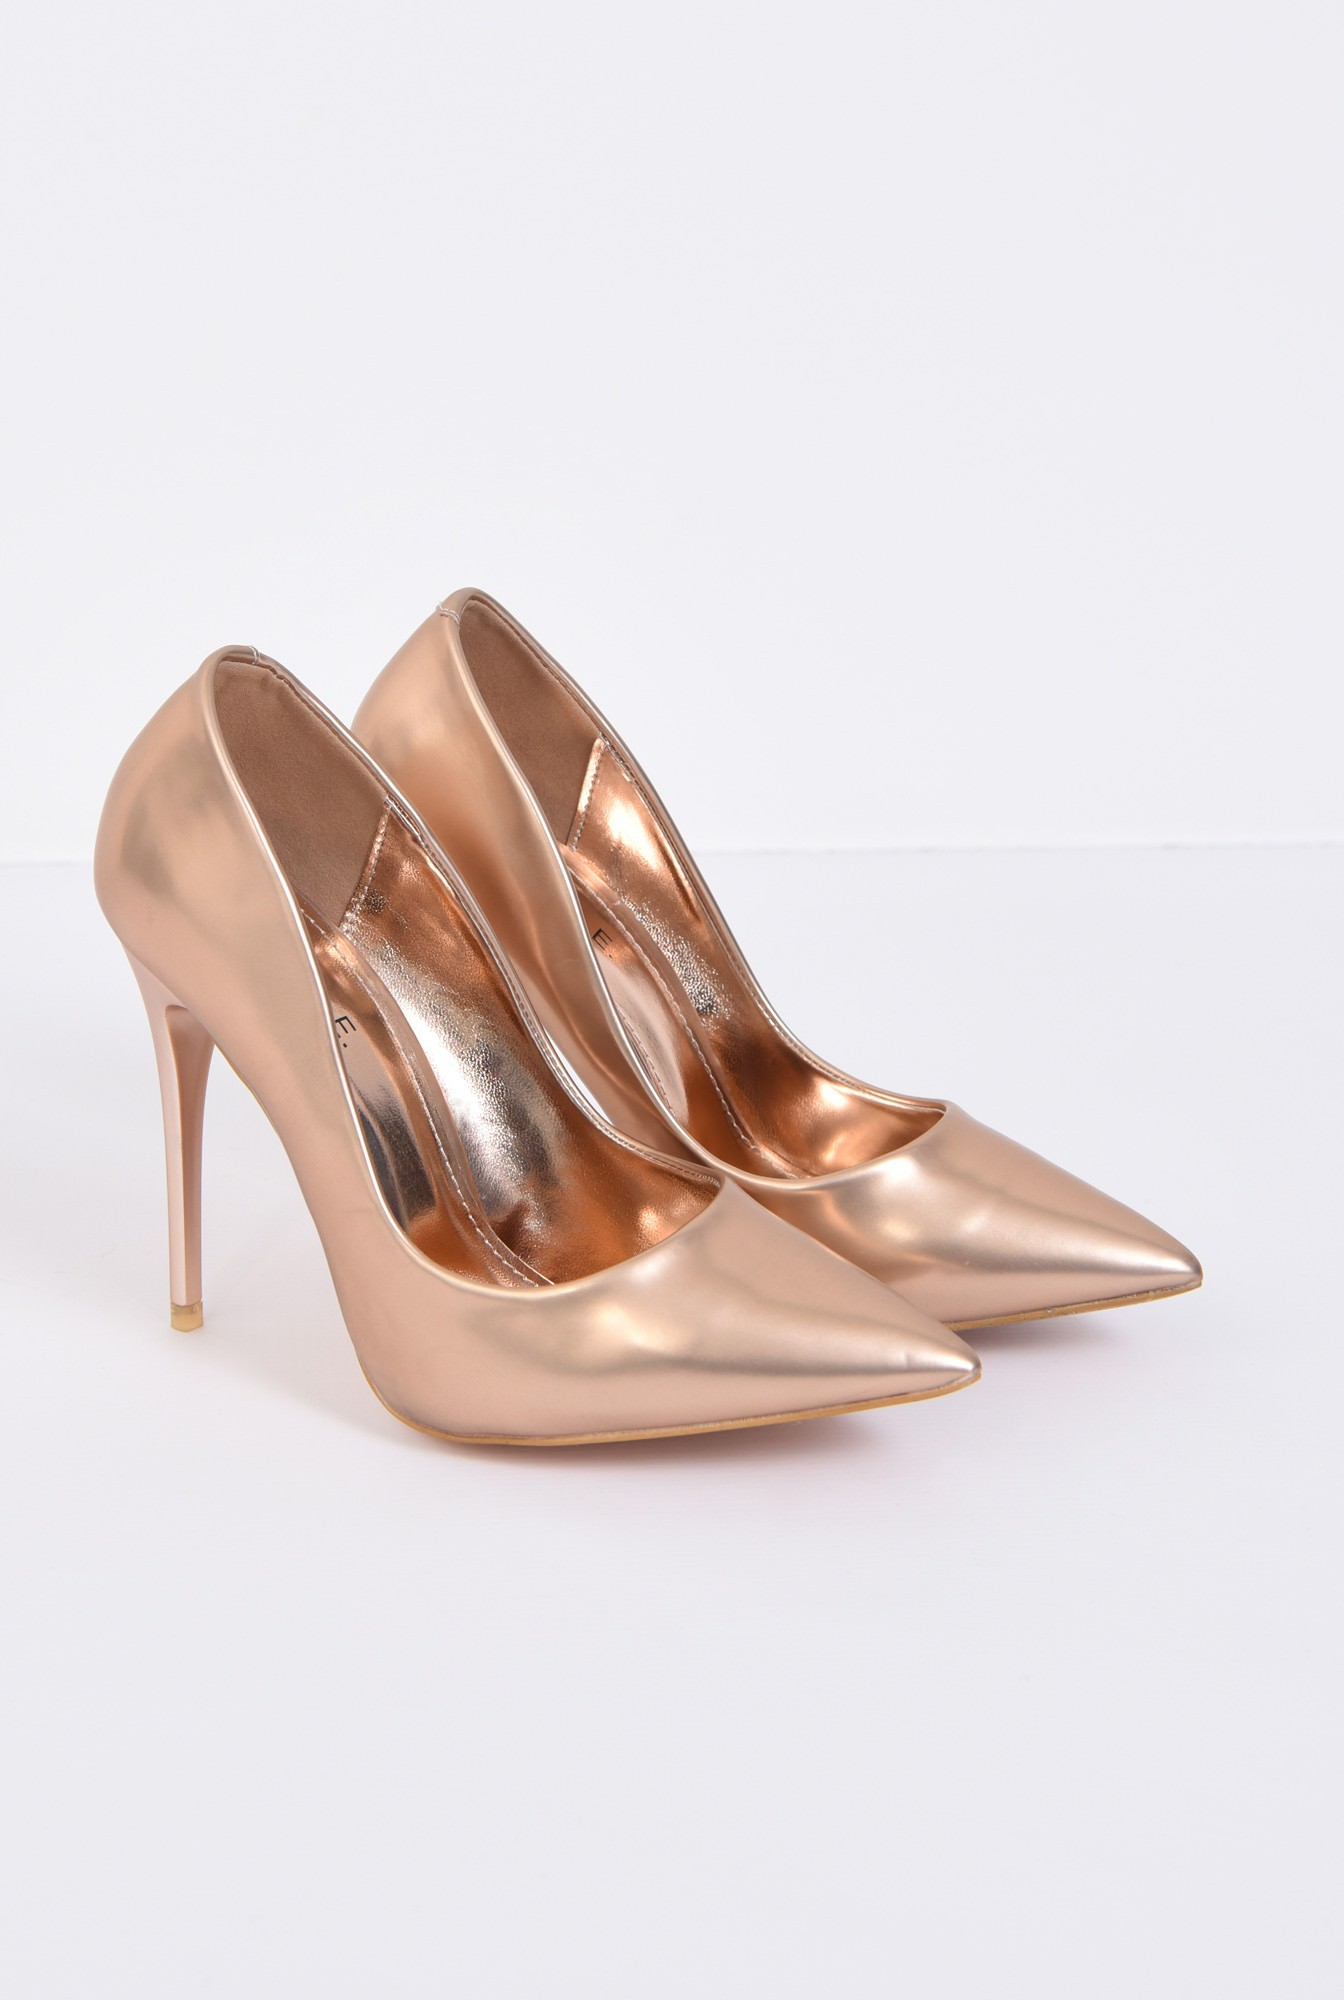 2 - PANTOFI STILETTO PO10091701-GOLD/ROSE